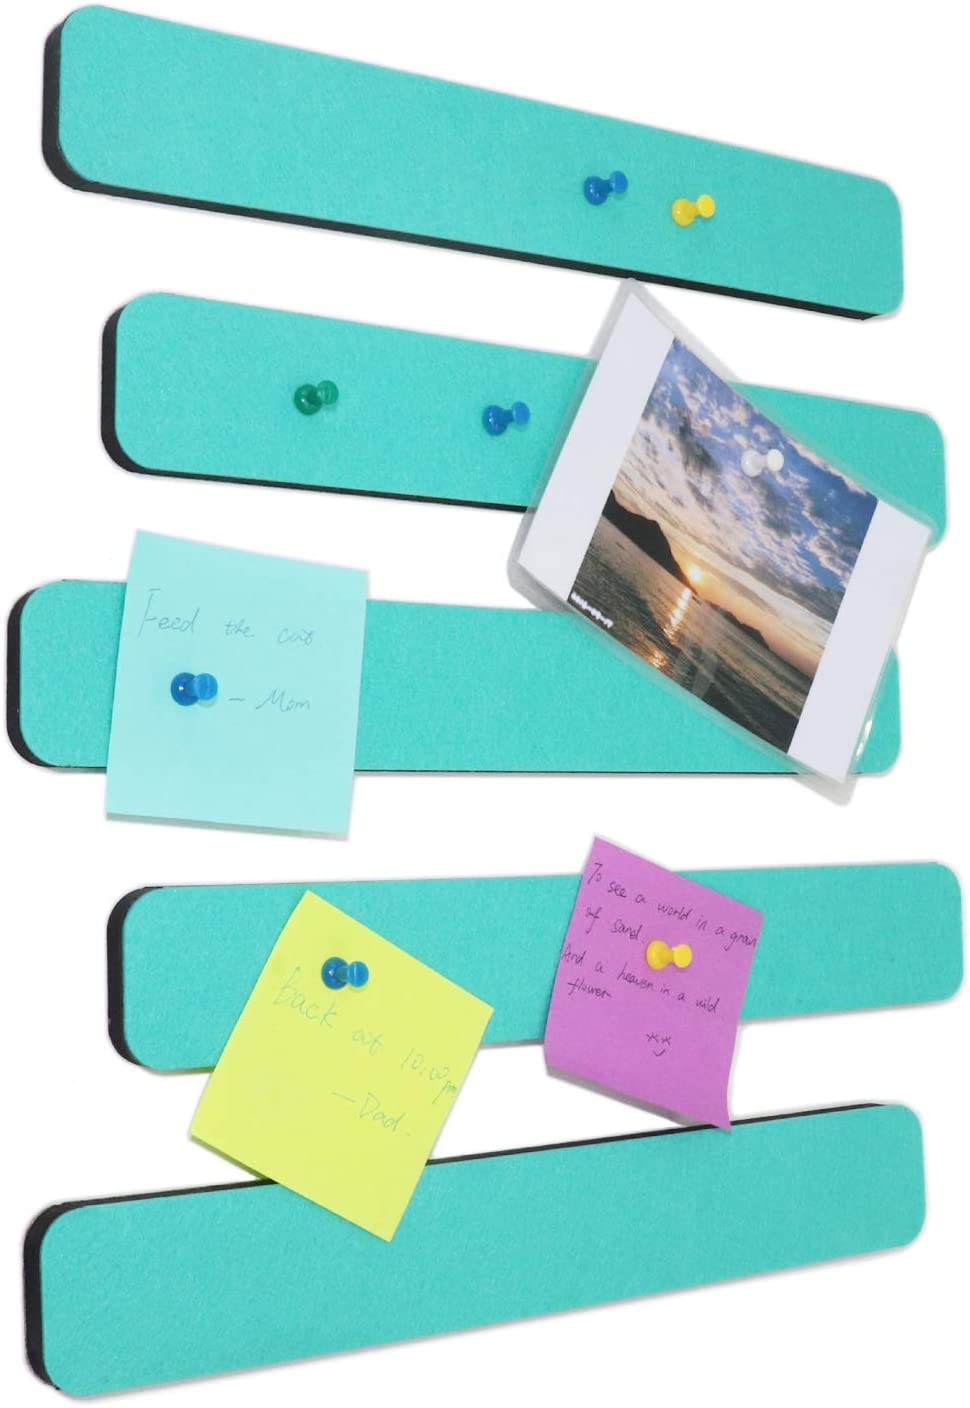 Omitfu Felt Bulletin Board Bar Strip 0.5 Inch Thick Self-Adhesive Pin Board Bar 13 Inch in Length with 15 Pushpins, 5 Turquoise Bars